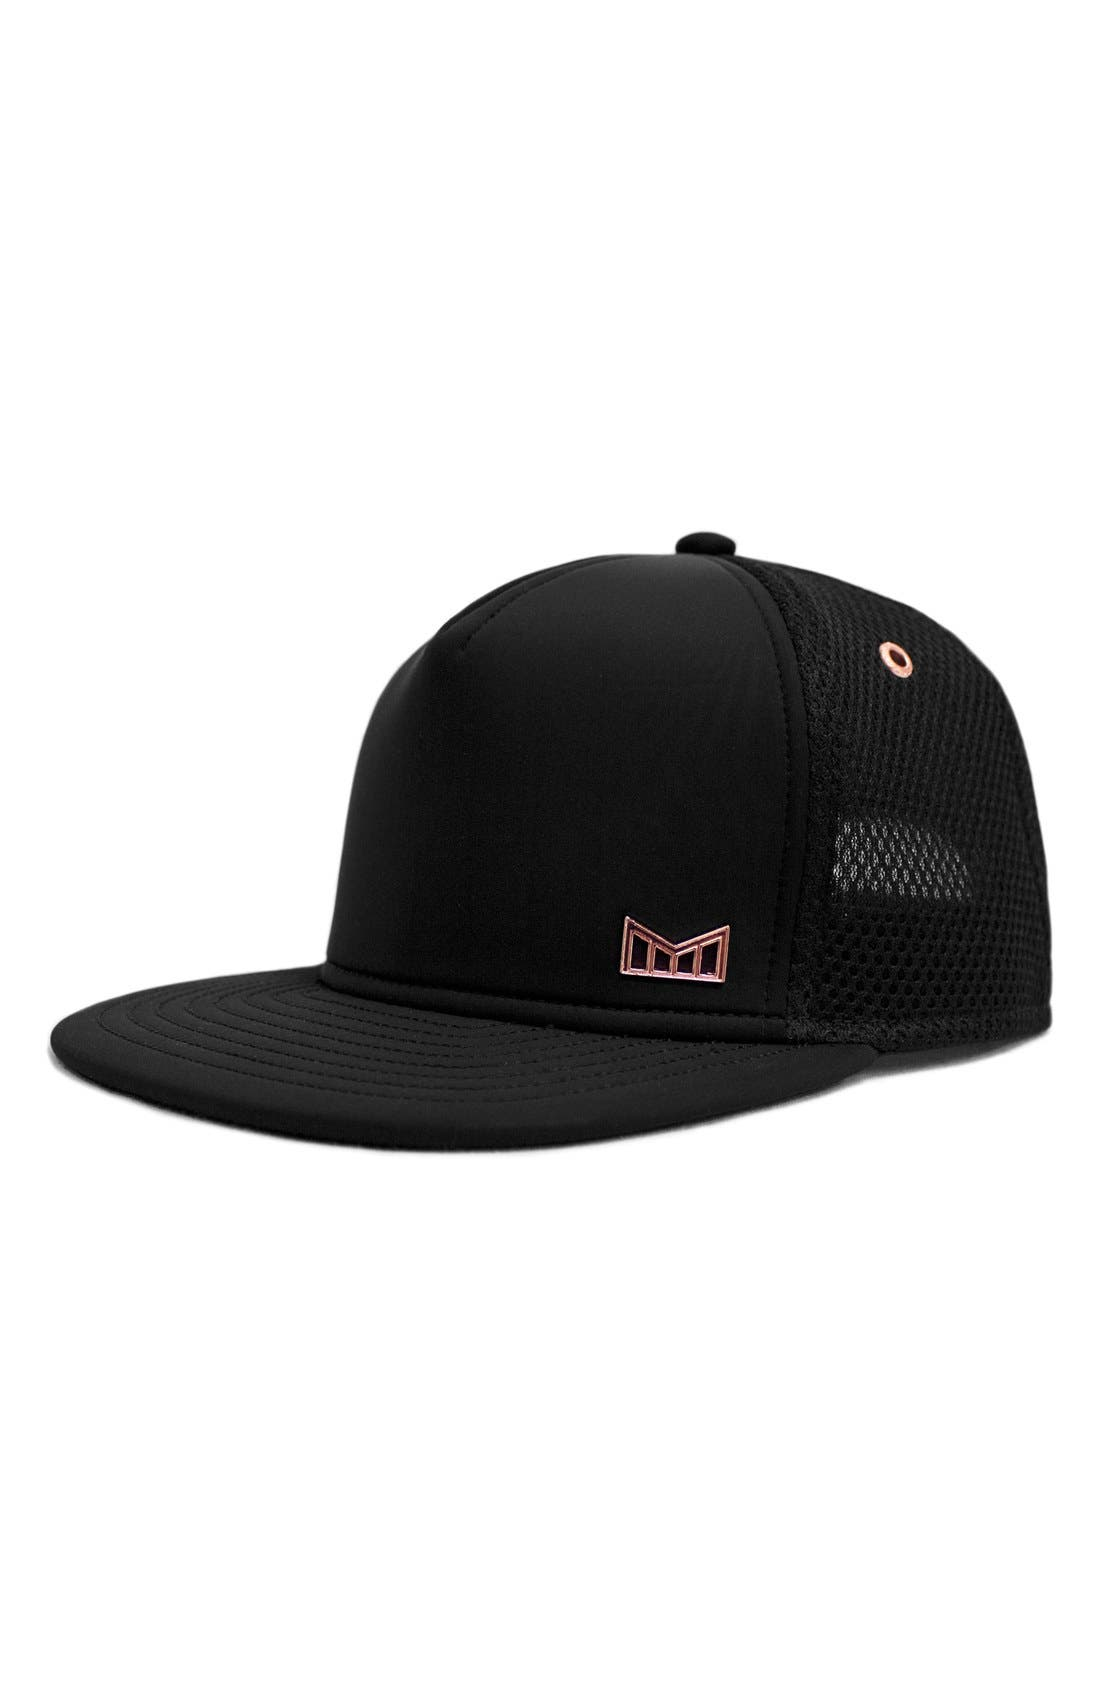 'The Majesty' Mesh Back Snapback Hat,                             Main thumbnail 1, color,                             001